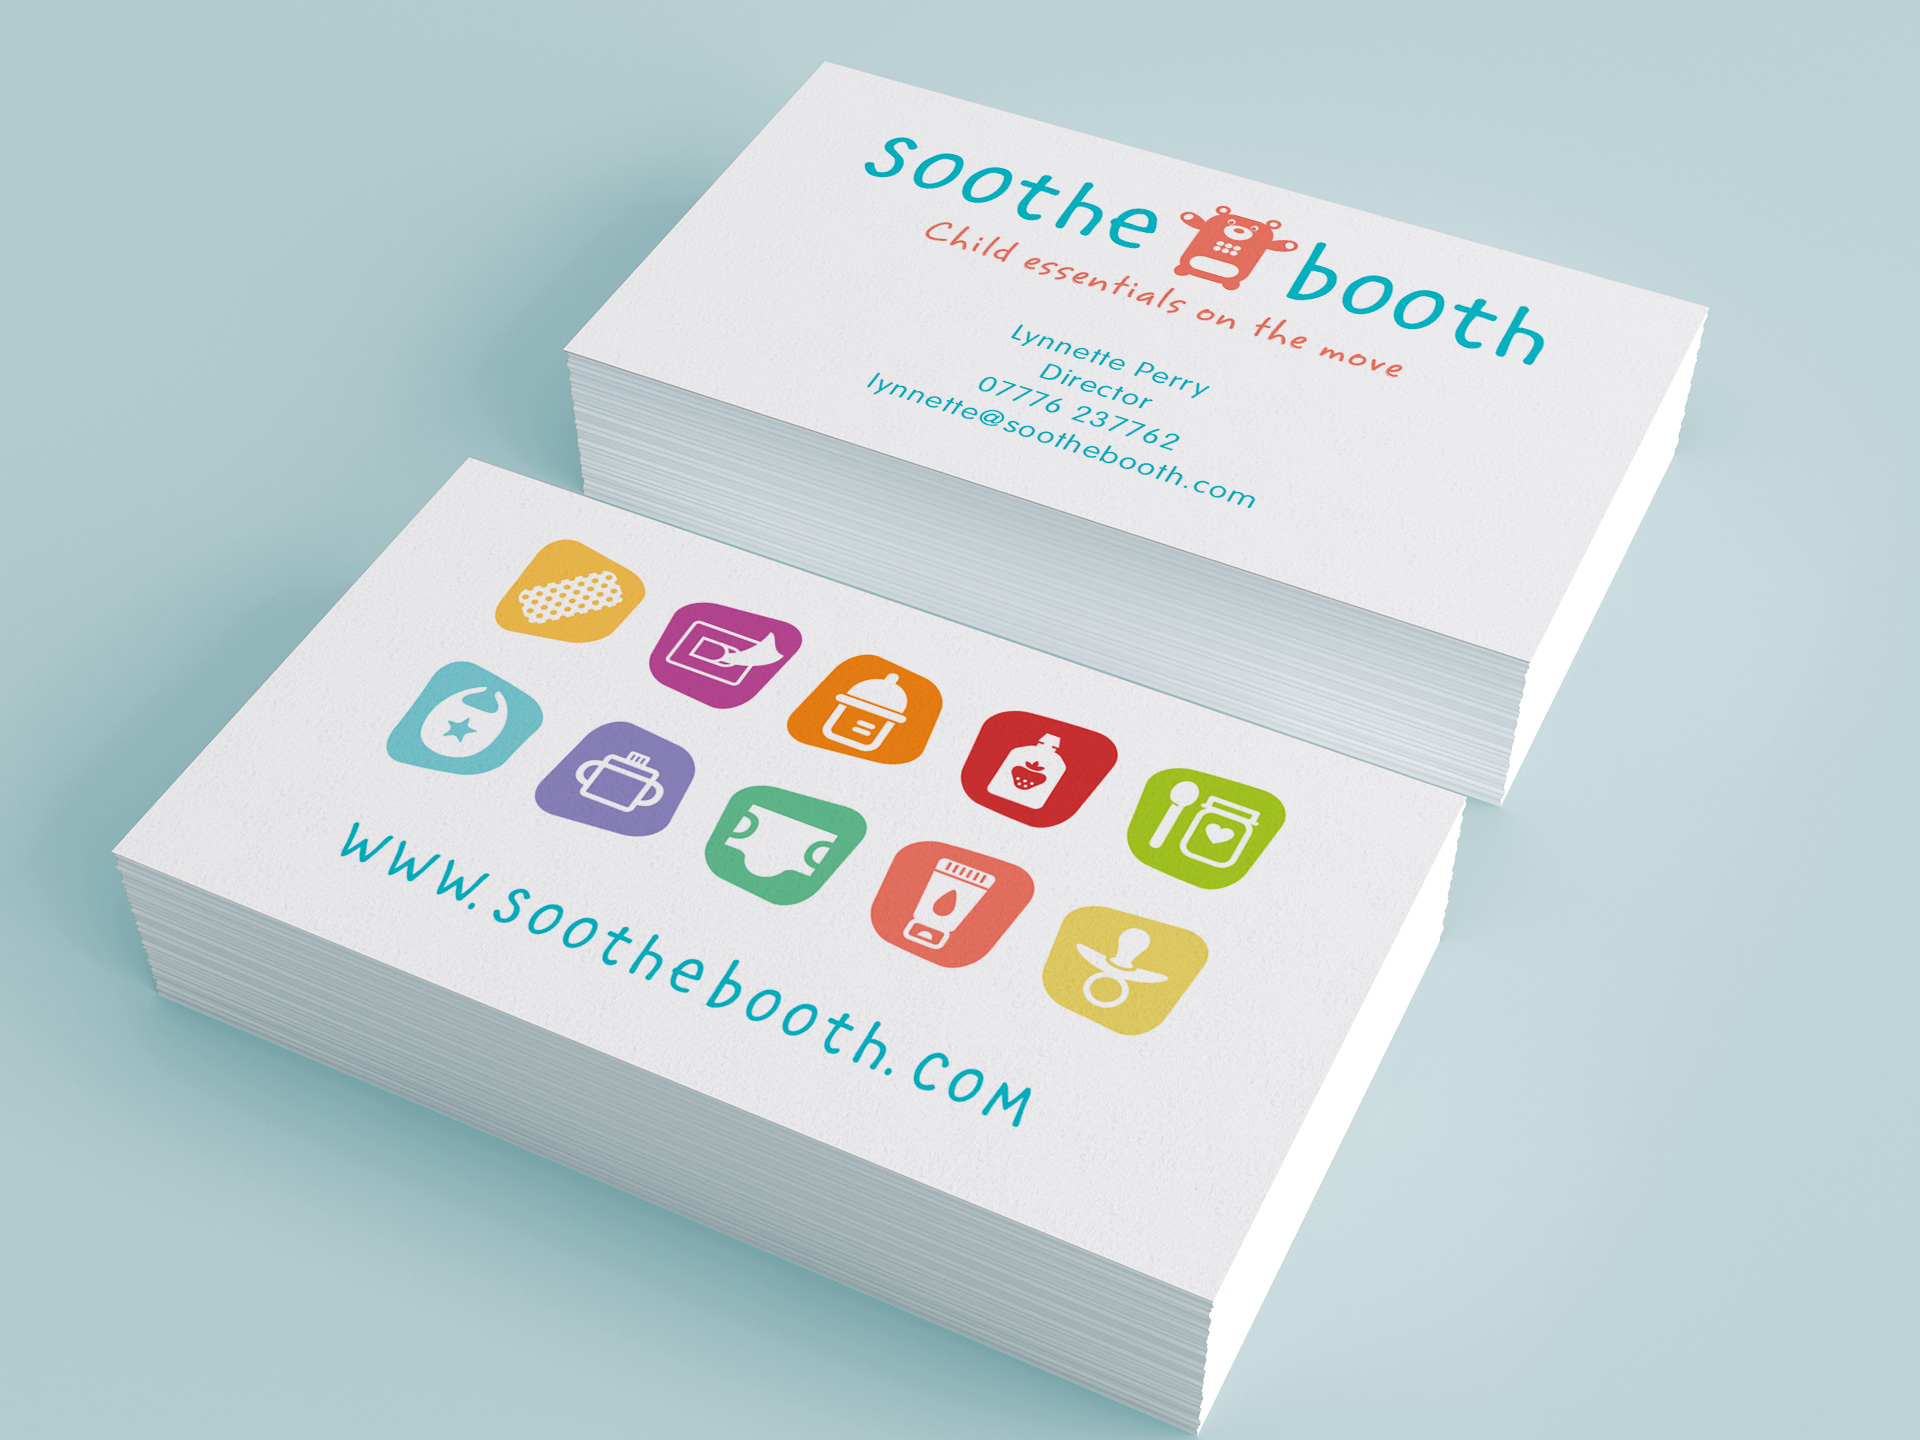 Soothe booth brand identity mercer design brand identity and icon design is one area in which mercer design excel reheart Image collections